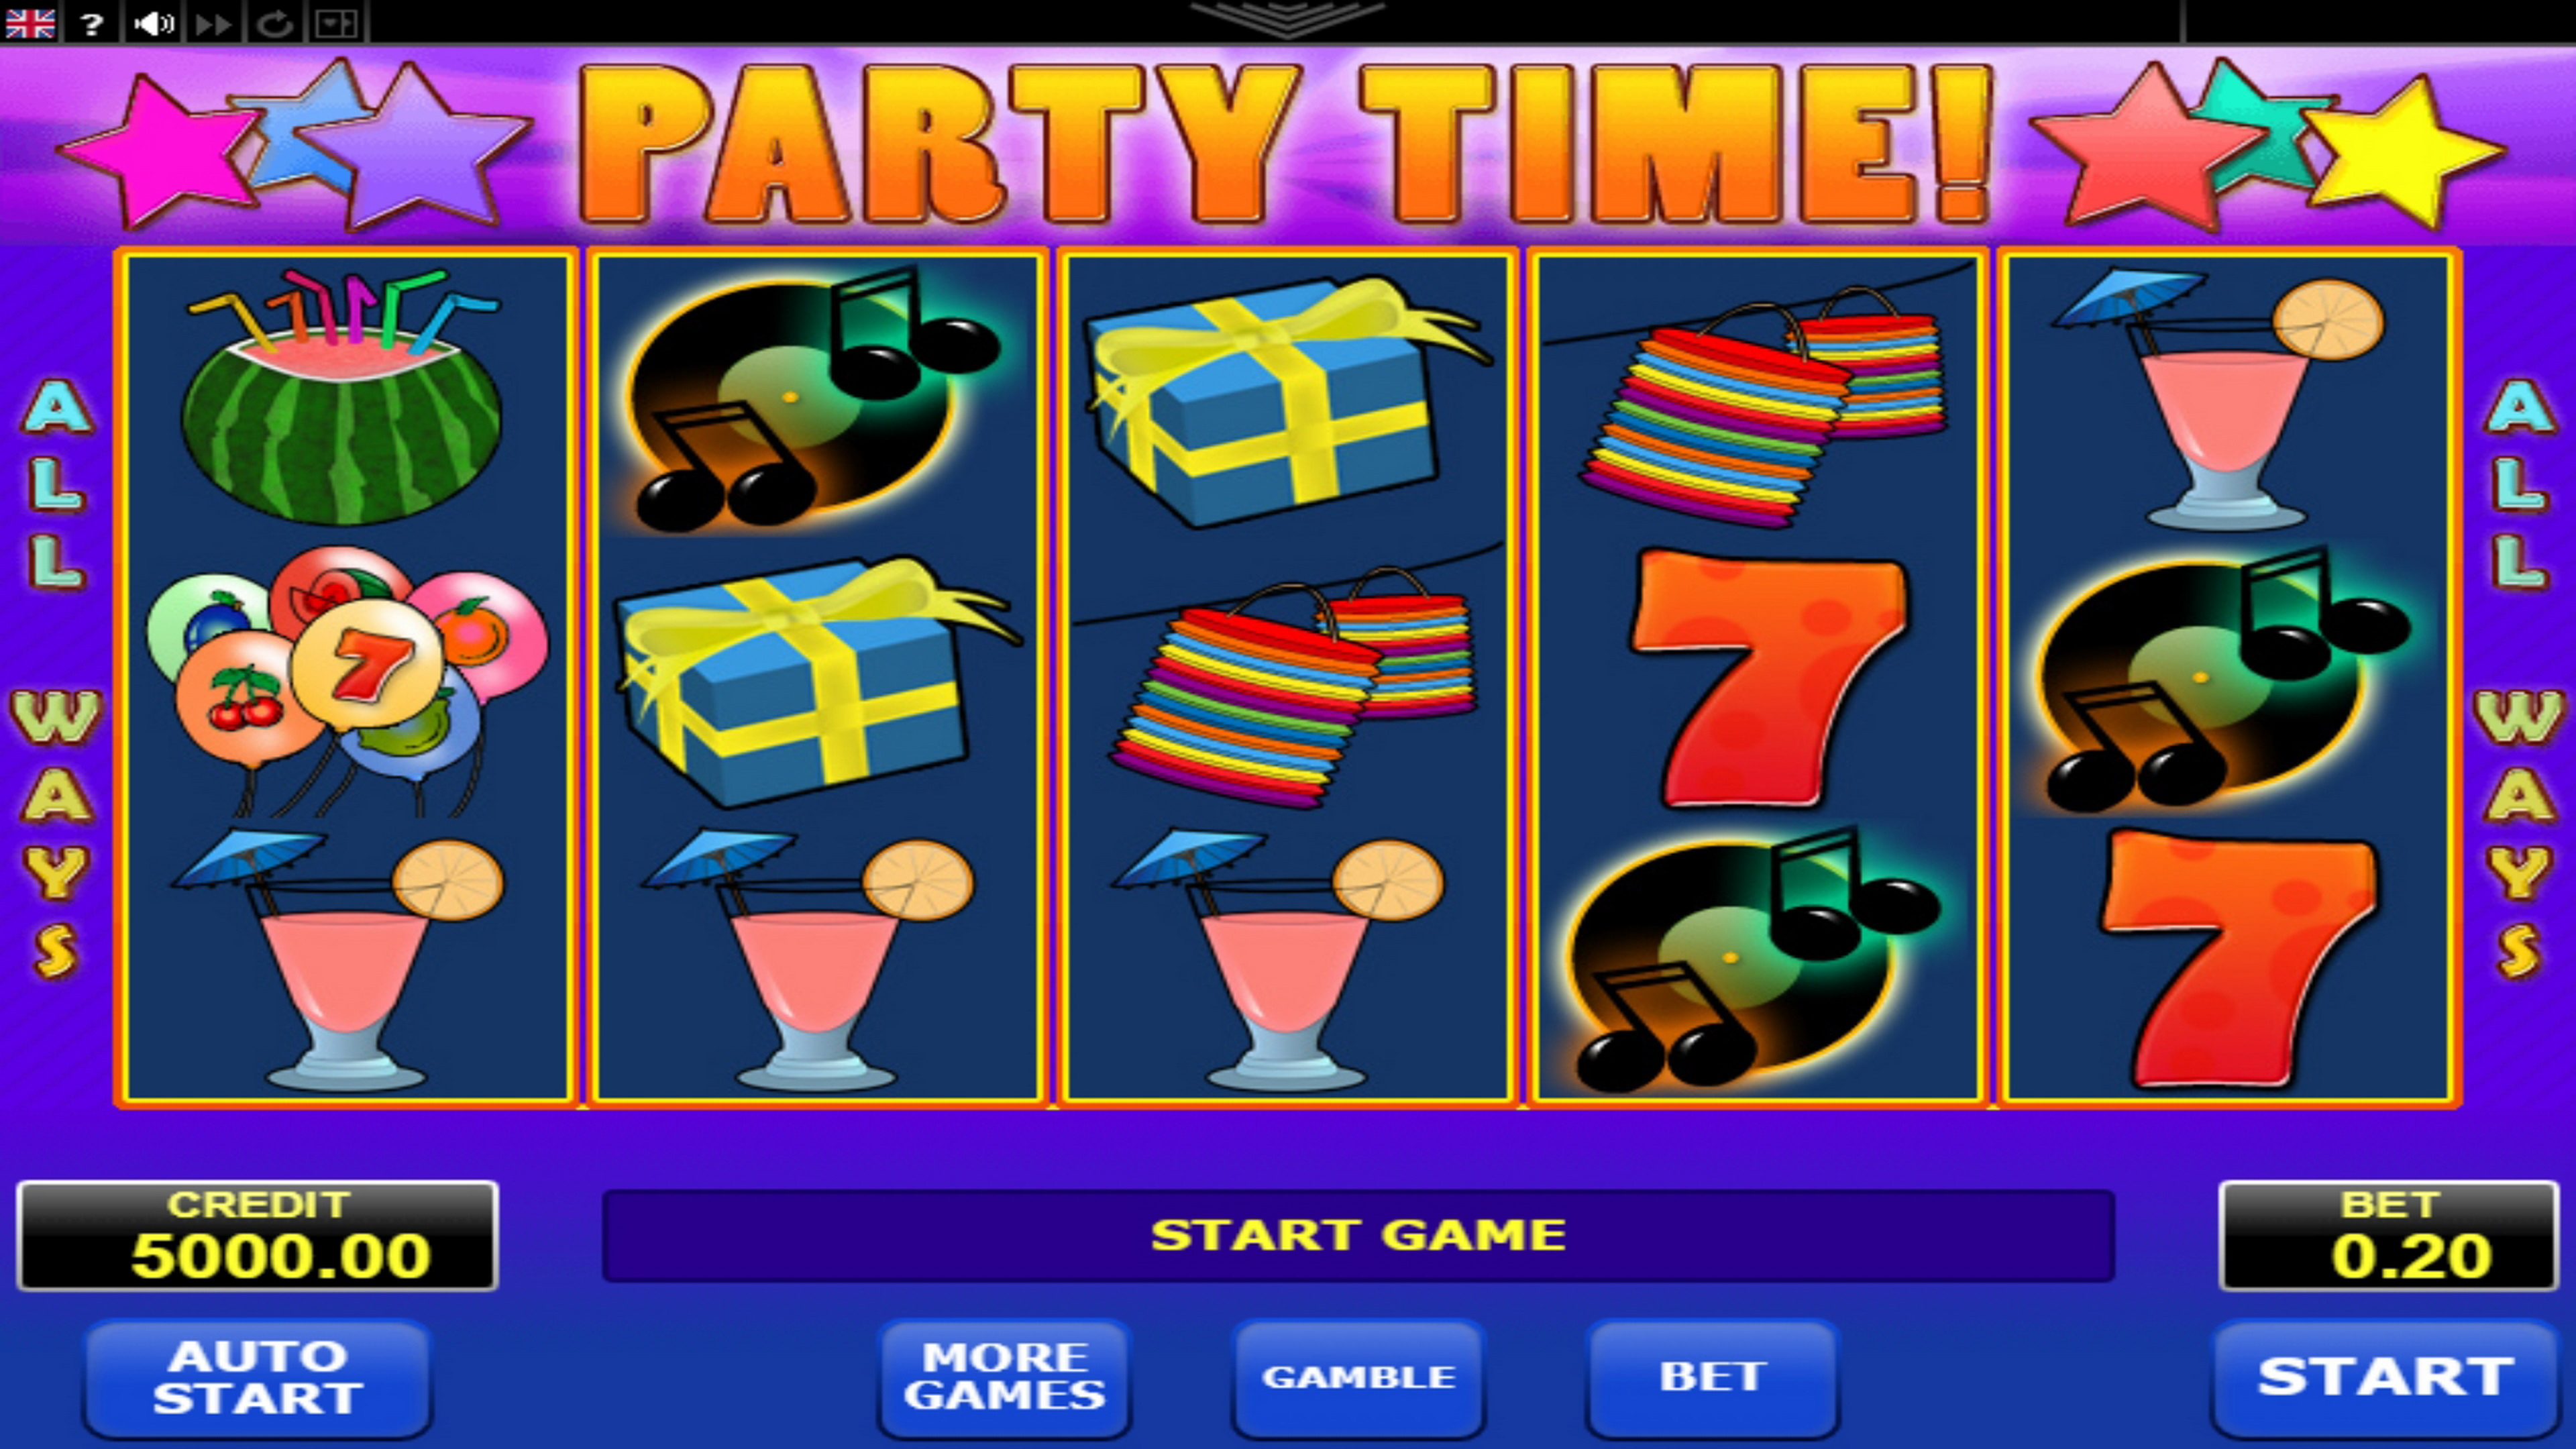 Reels in Party Time Slot Game by Amatic Industries